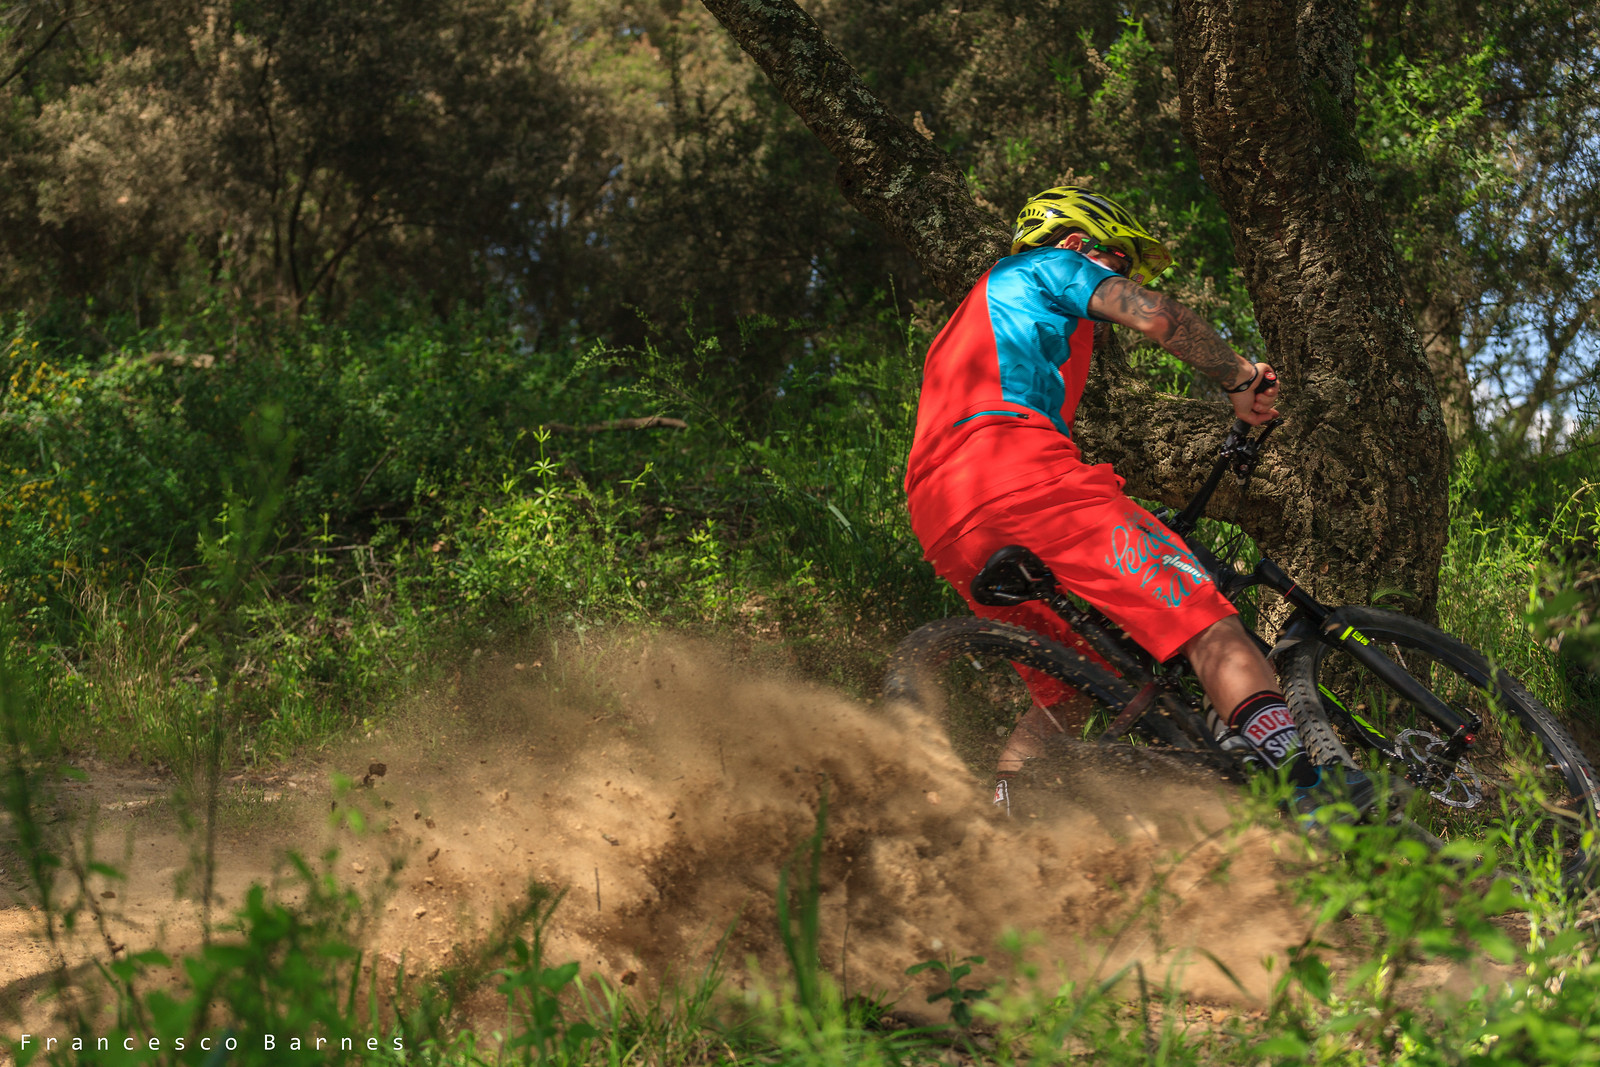 Sandstorm  - Gladiax87 - Mountain Biking Pictures - Vital MTB